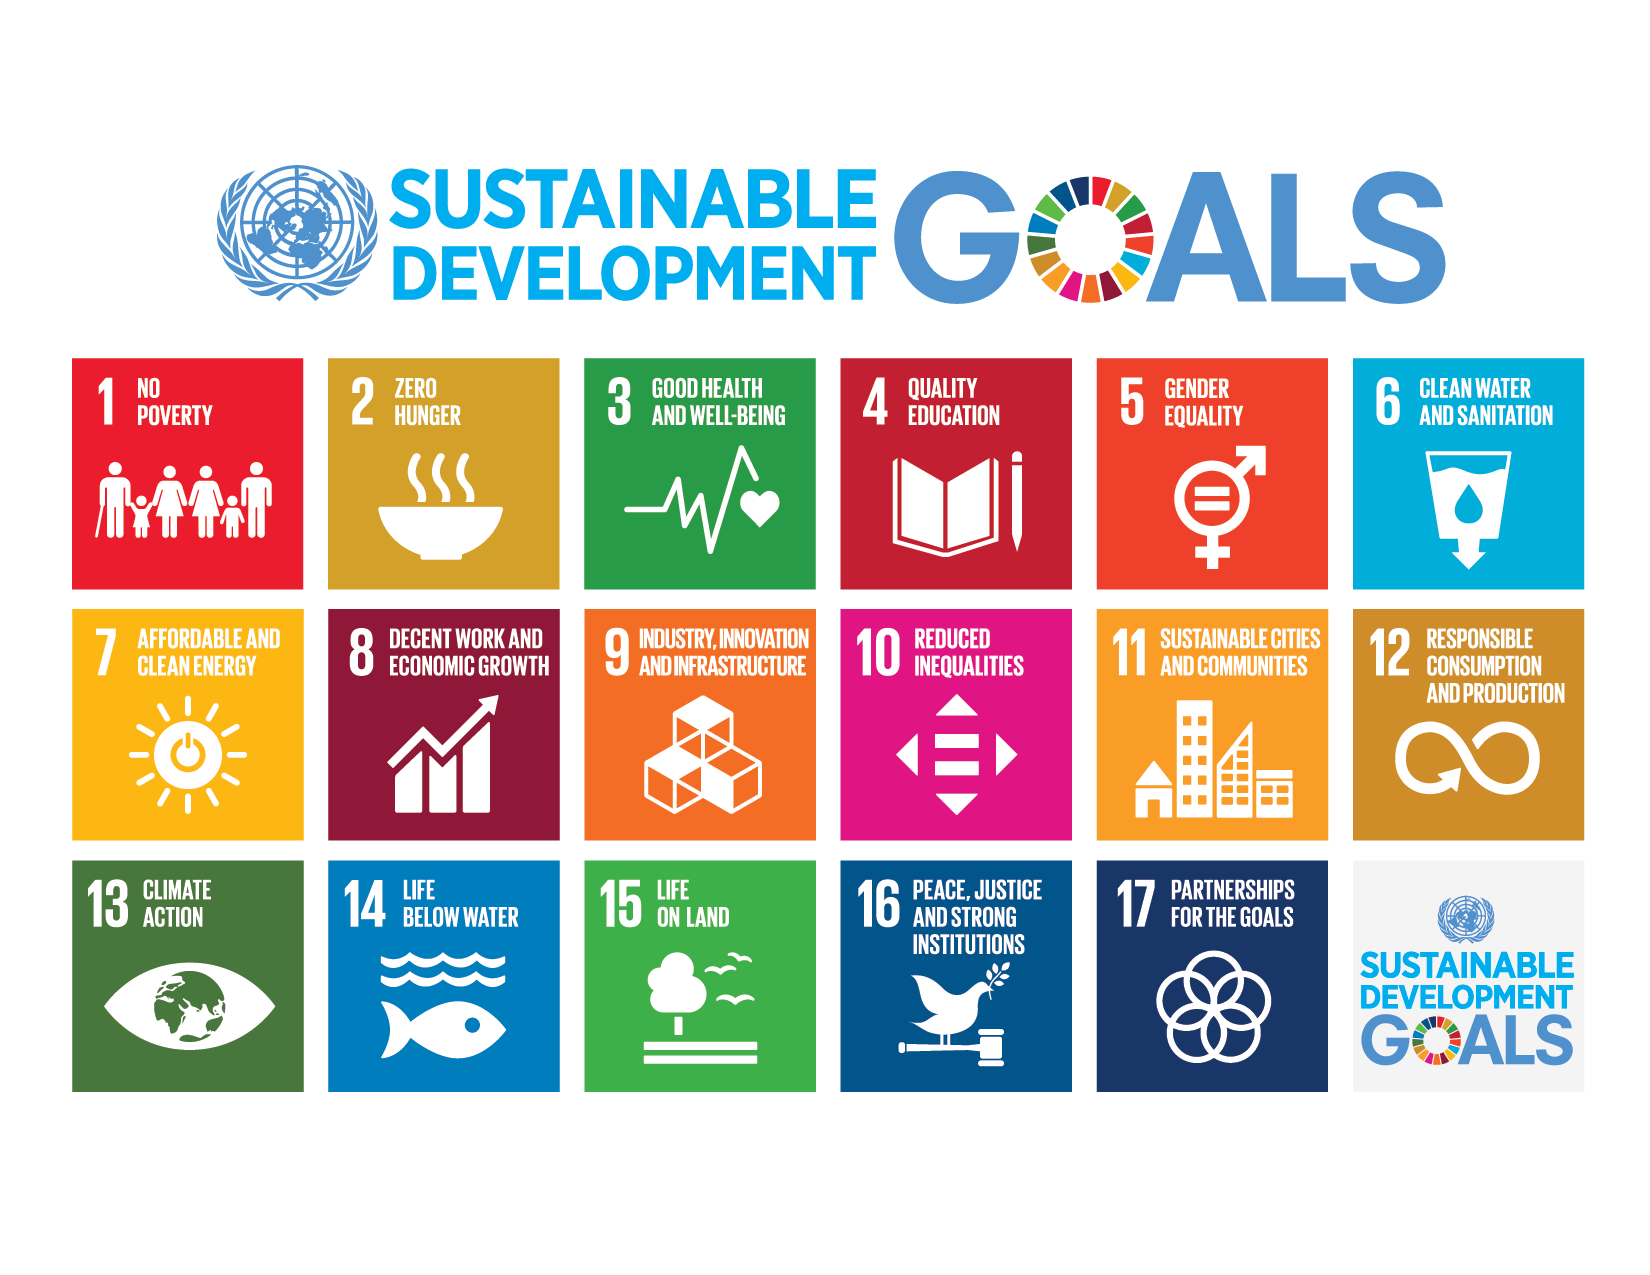 http://files.b-token.us/files/279/original/E_2018_SDG_Poster_with_UN_emblem.png?1540196676